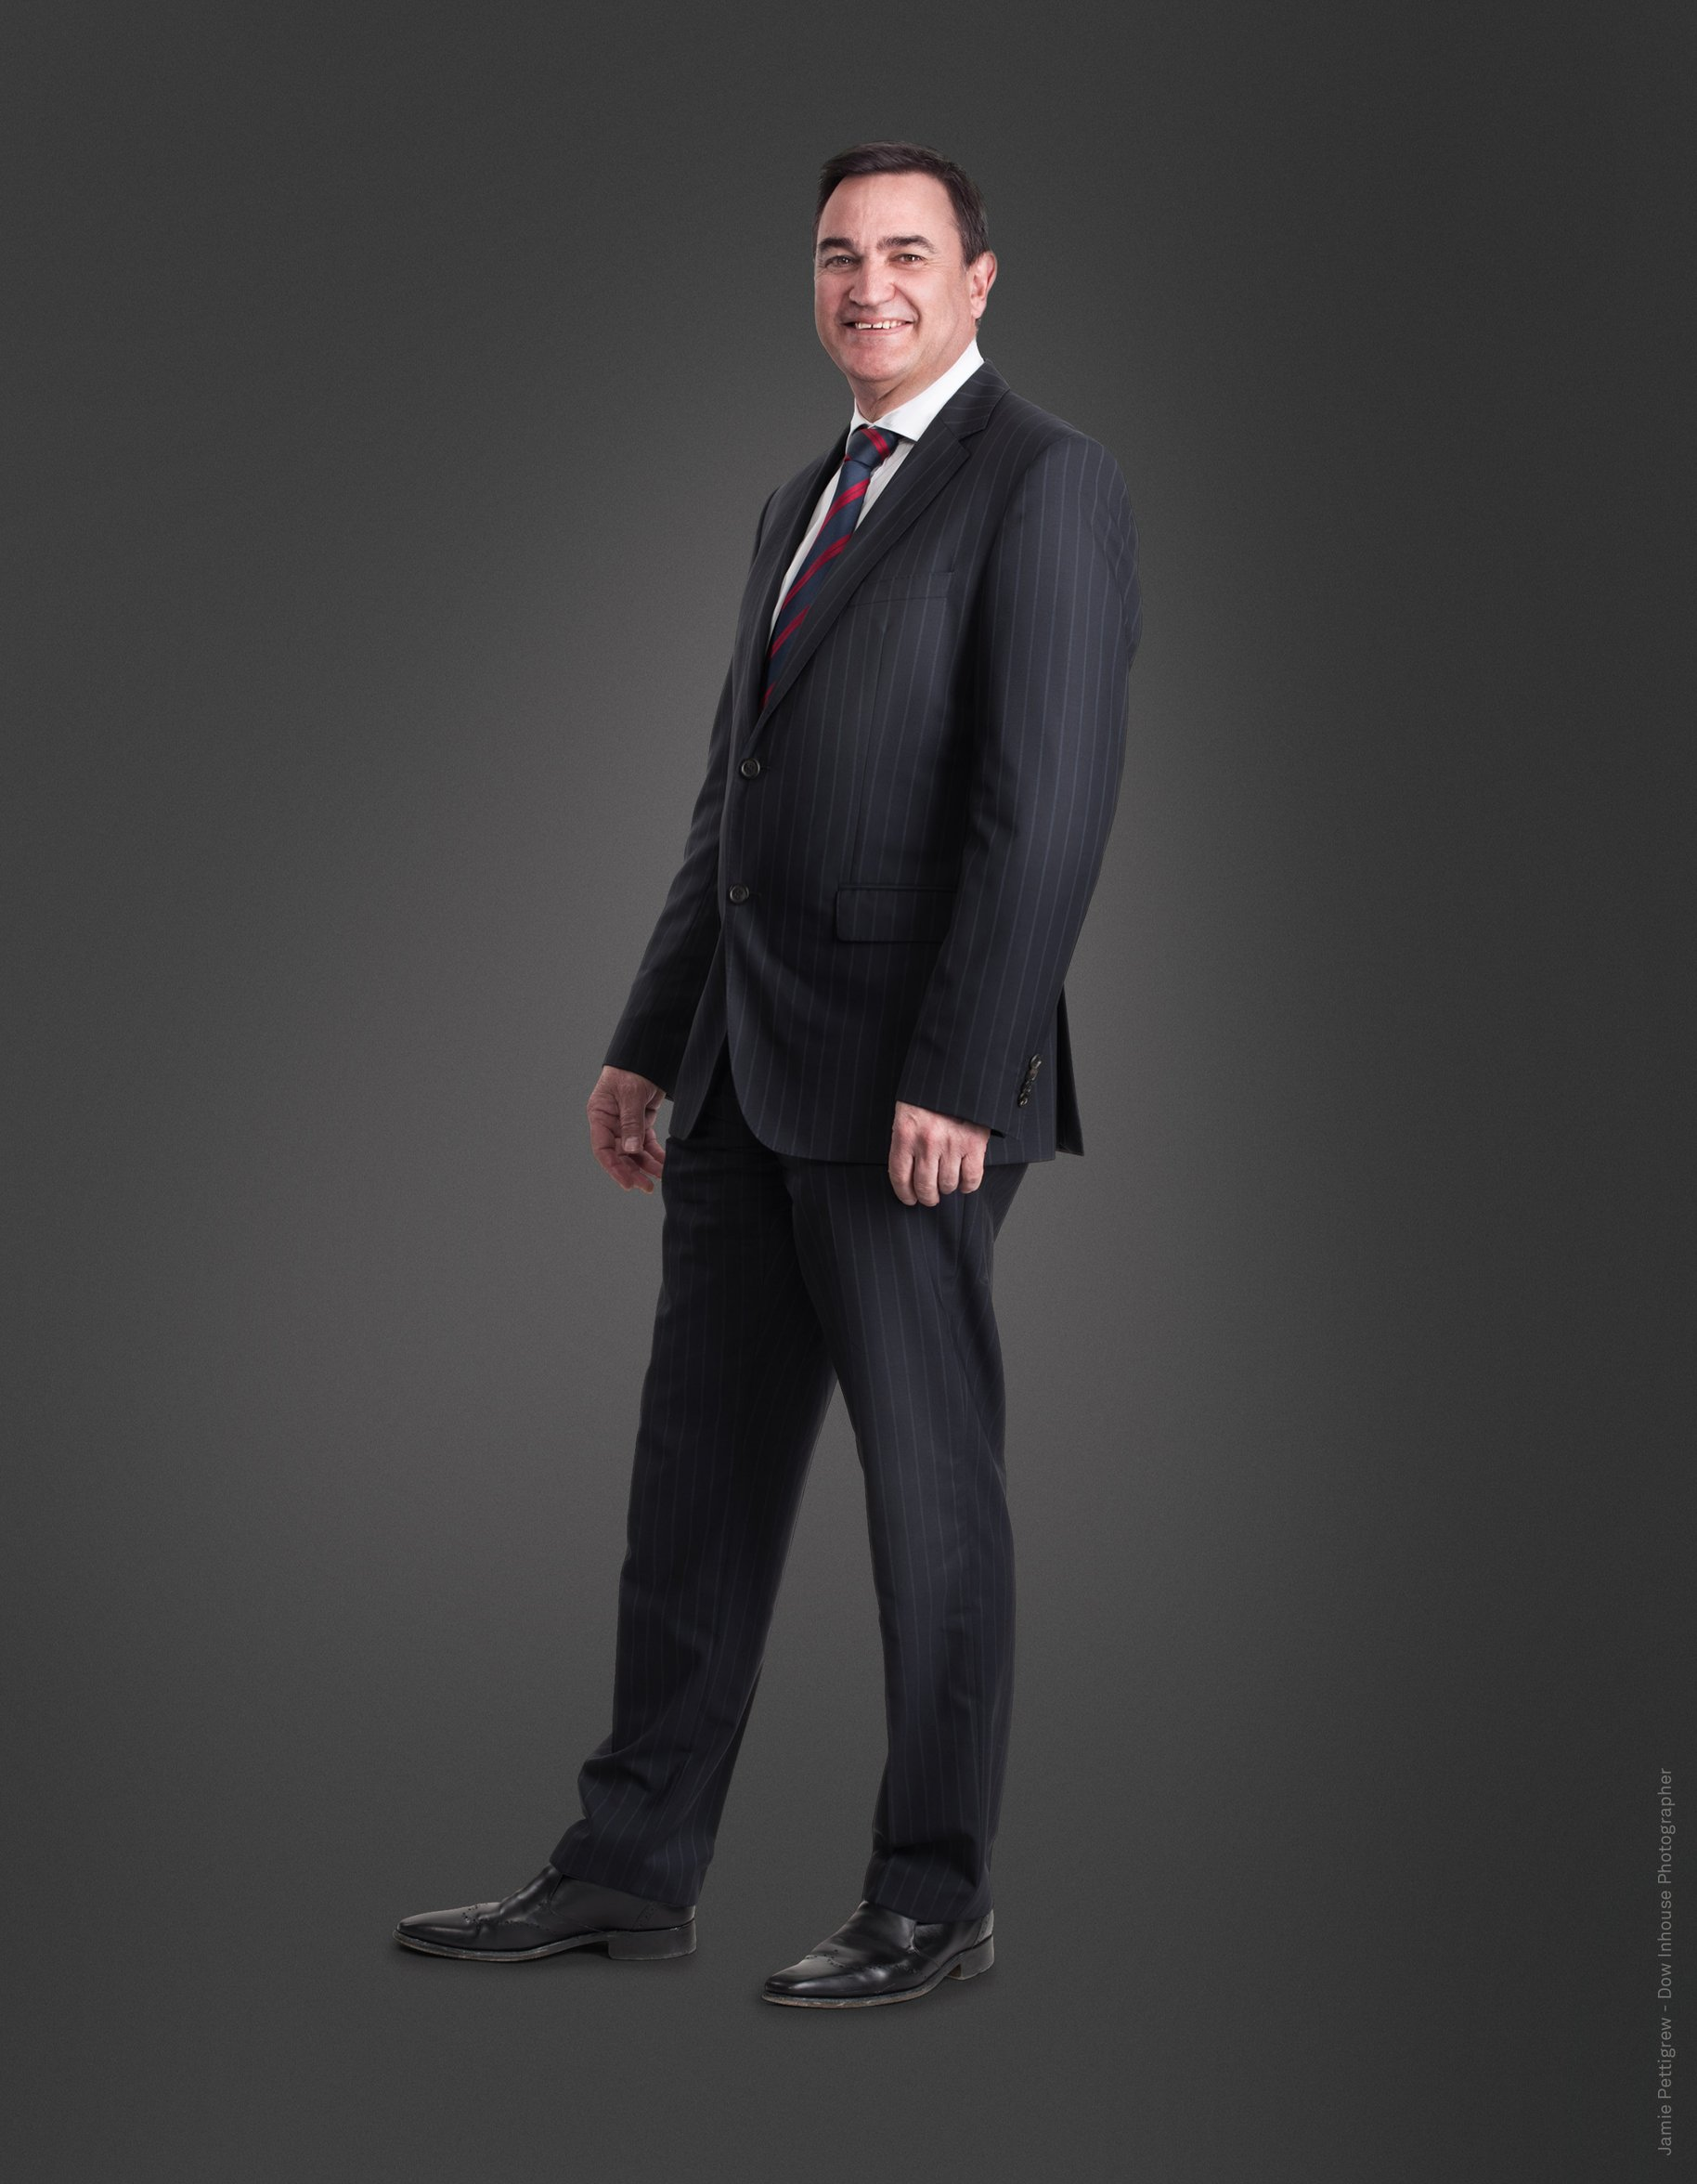 Craigs Investment Partners staff portrait photography